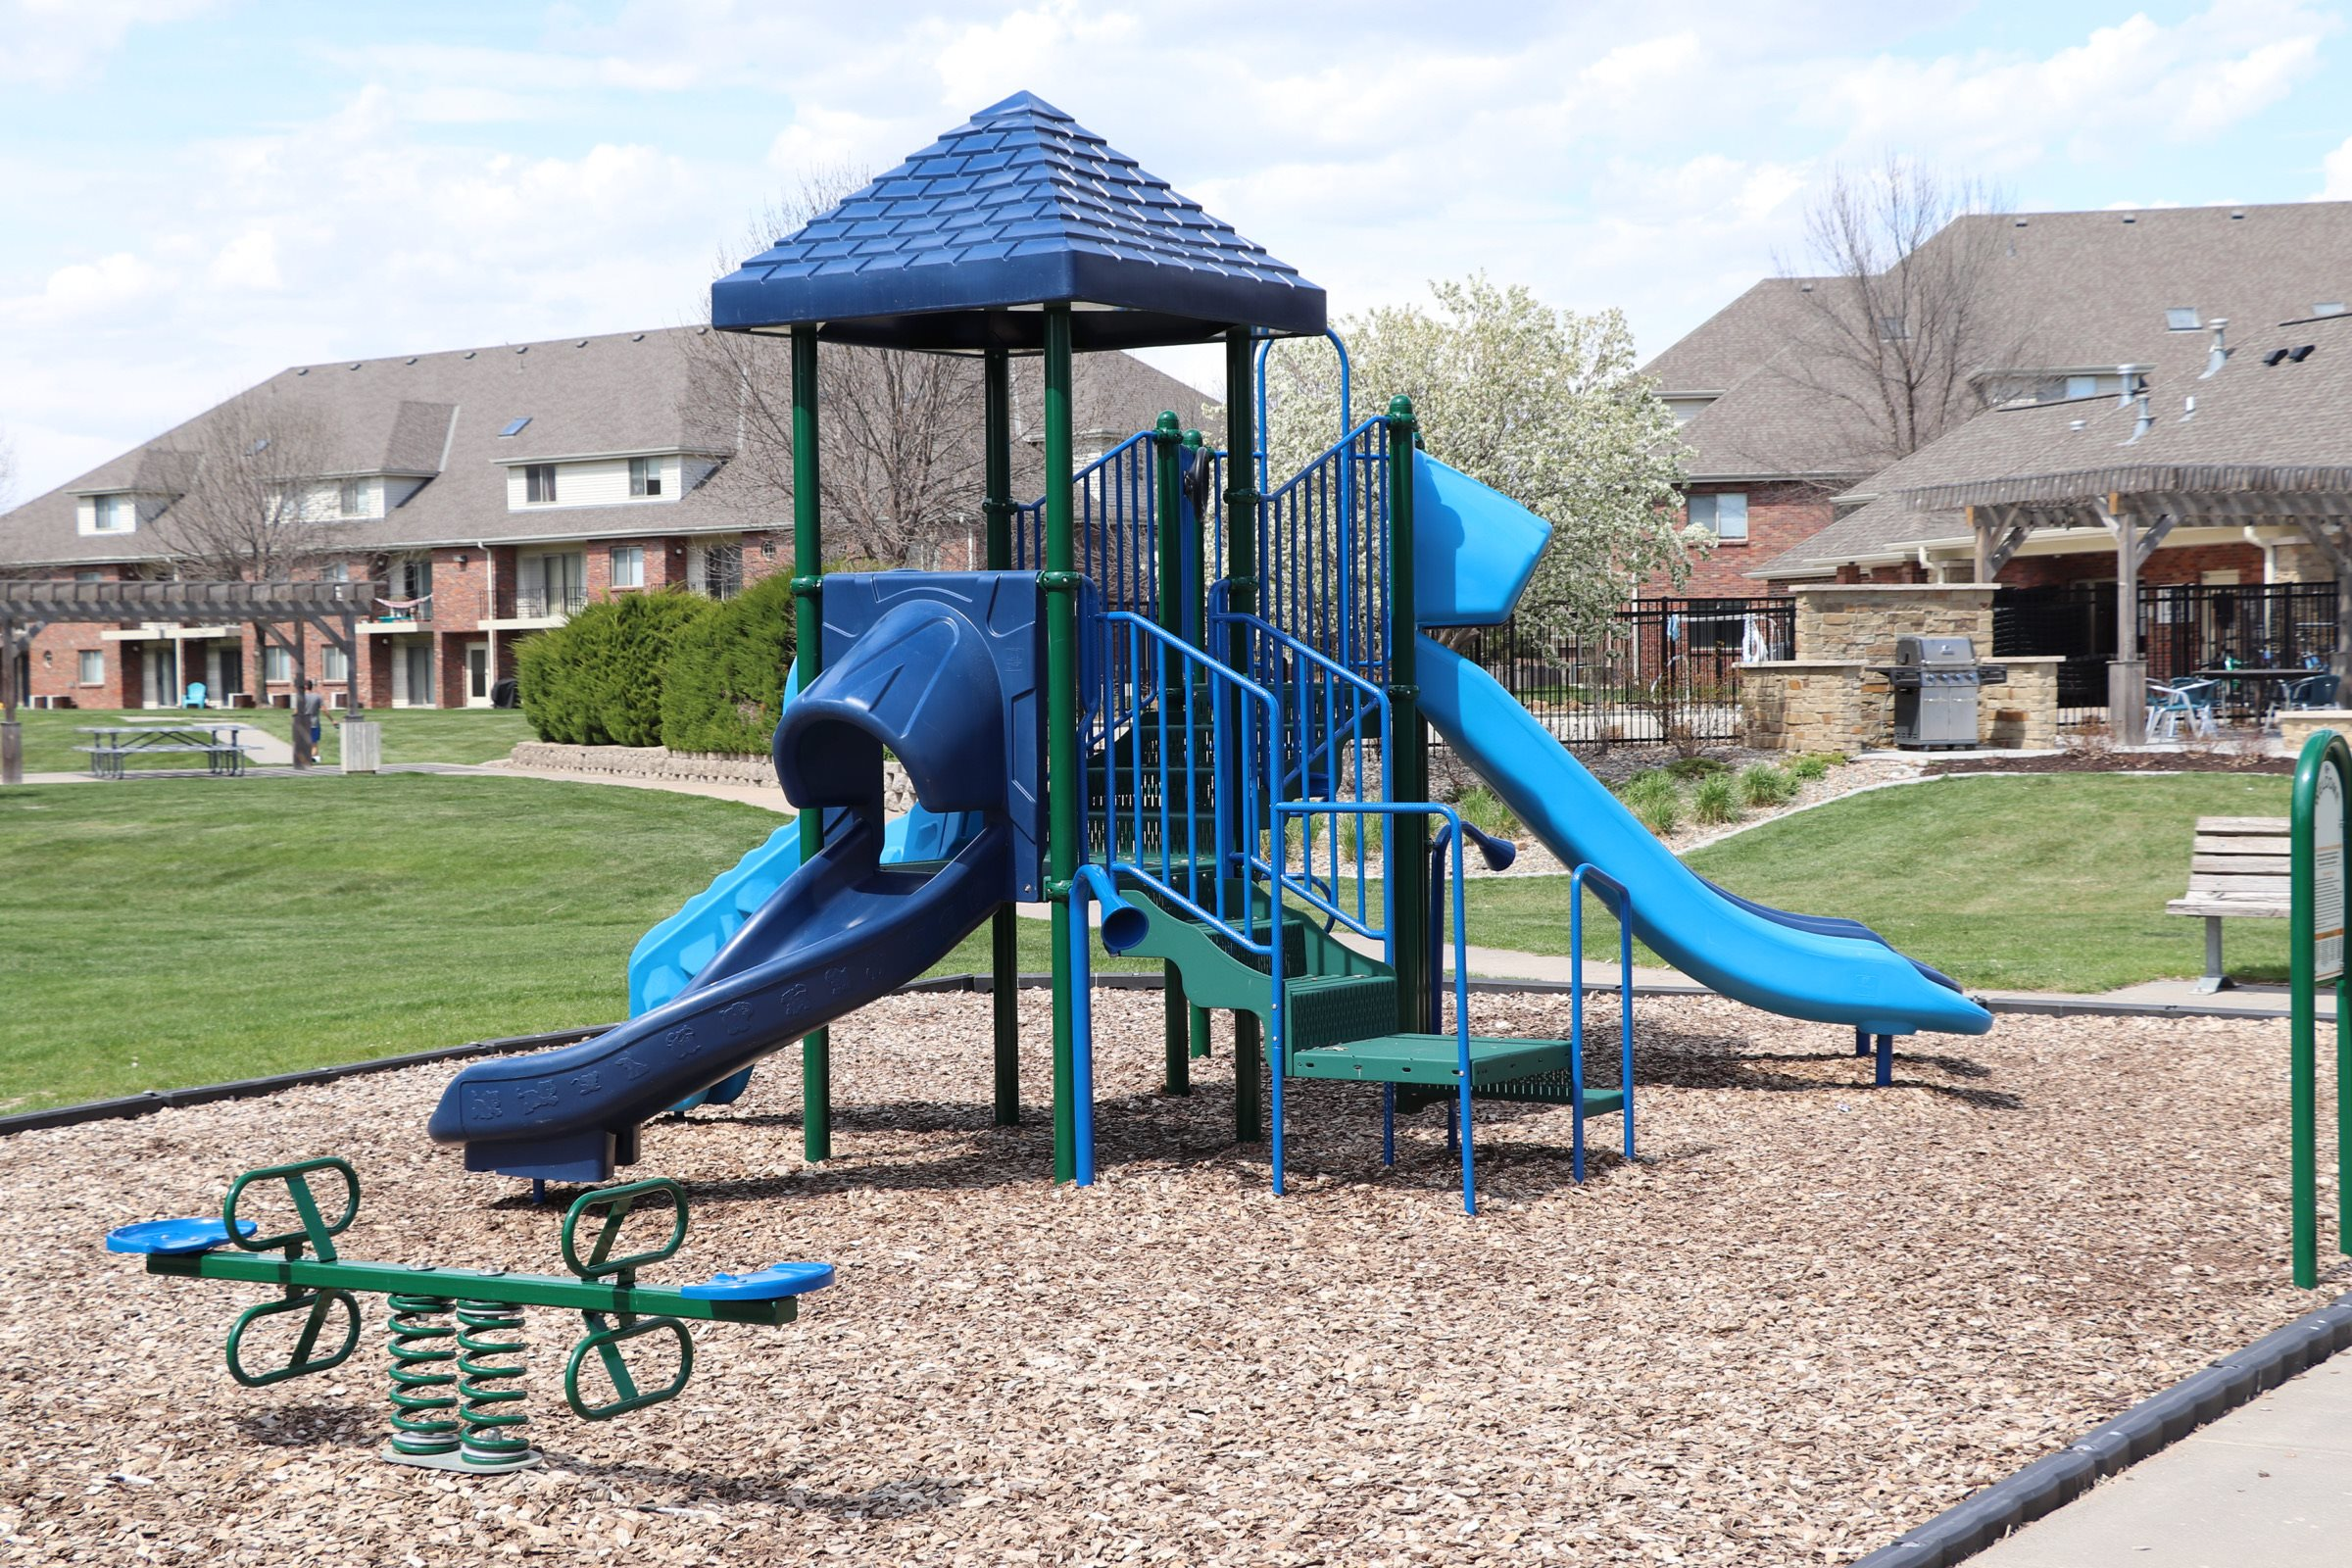 Children's playground with slides and a seesaw at Fountain Glen Apartments in Lincoln, NE